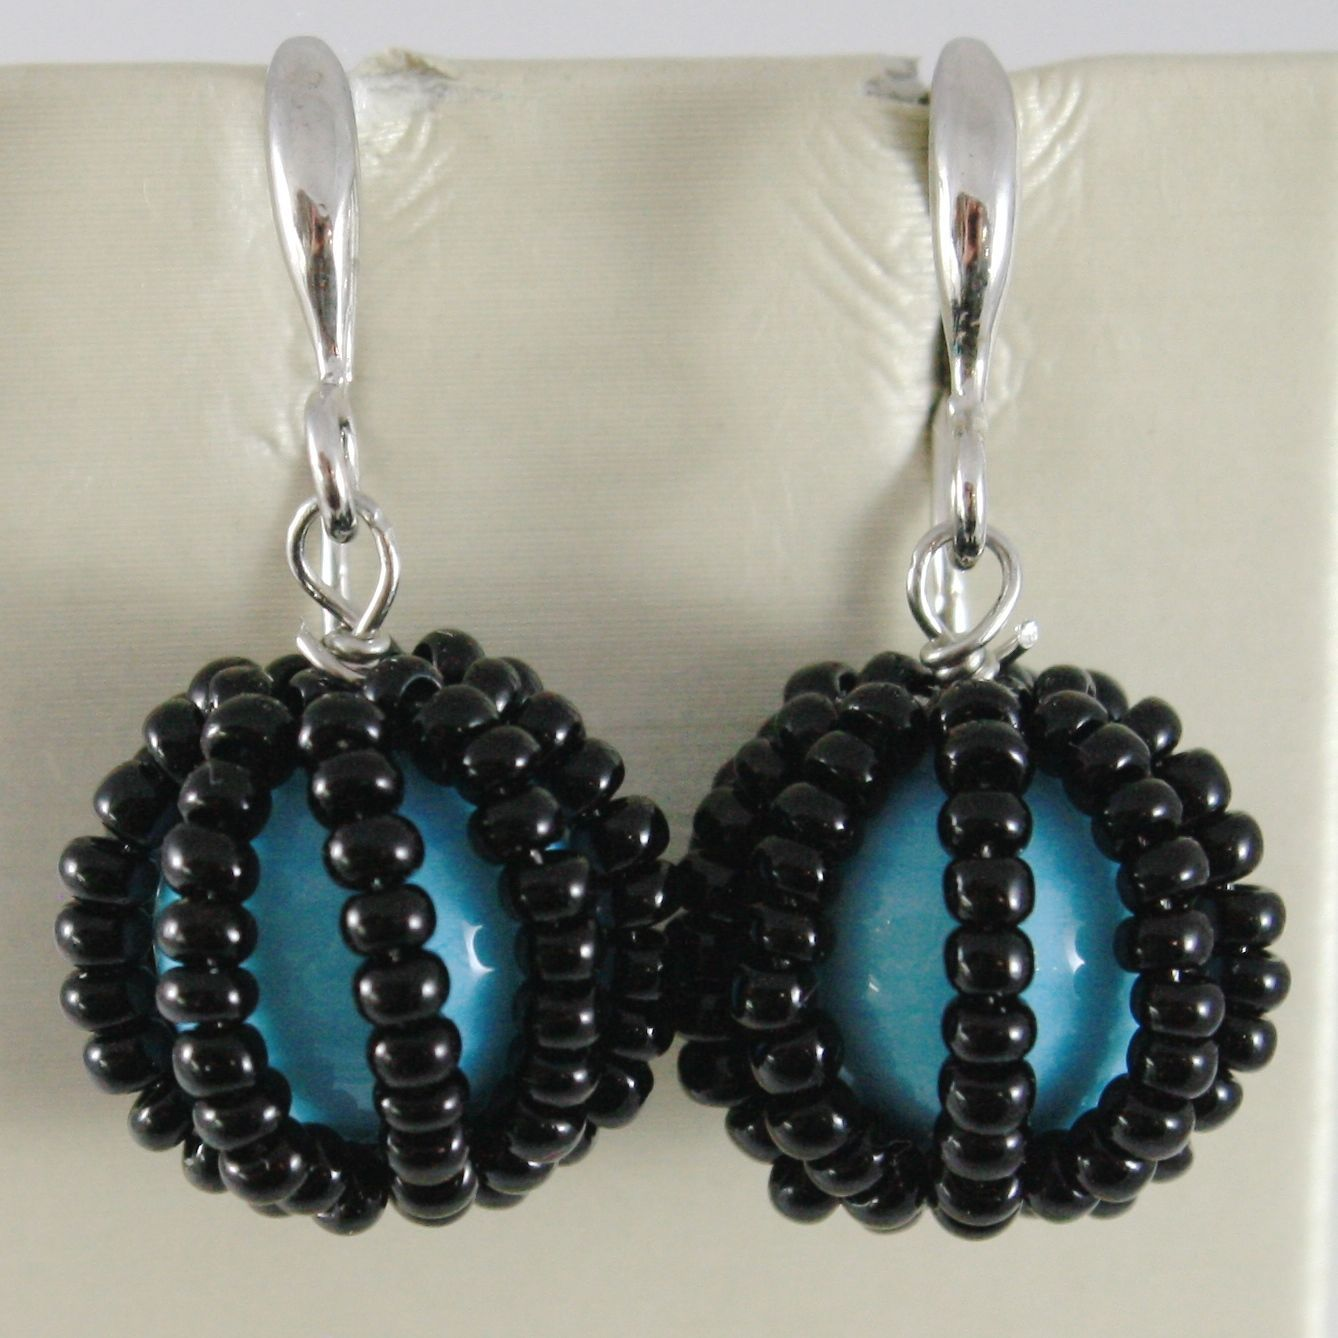 EARRINGS ANTICA MURRINA VENEZIA WITH MURANO GLASS OR541A07 ROUND HANGING